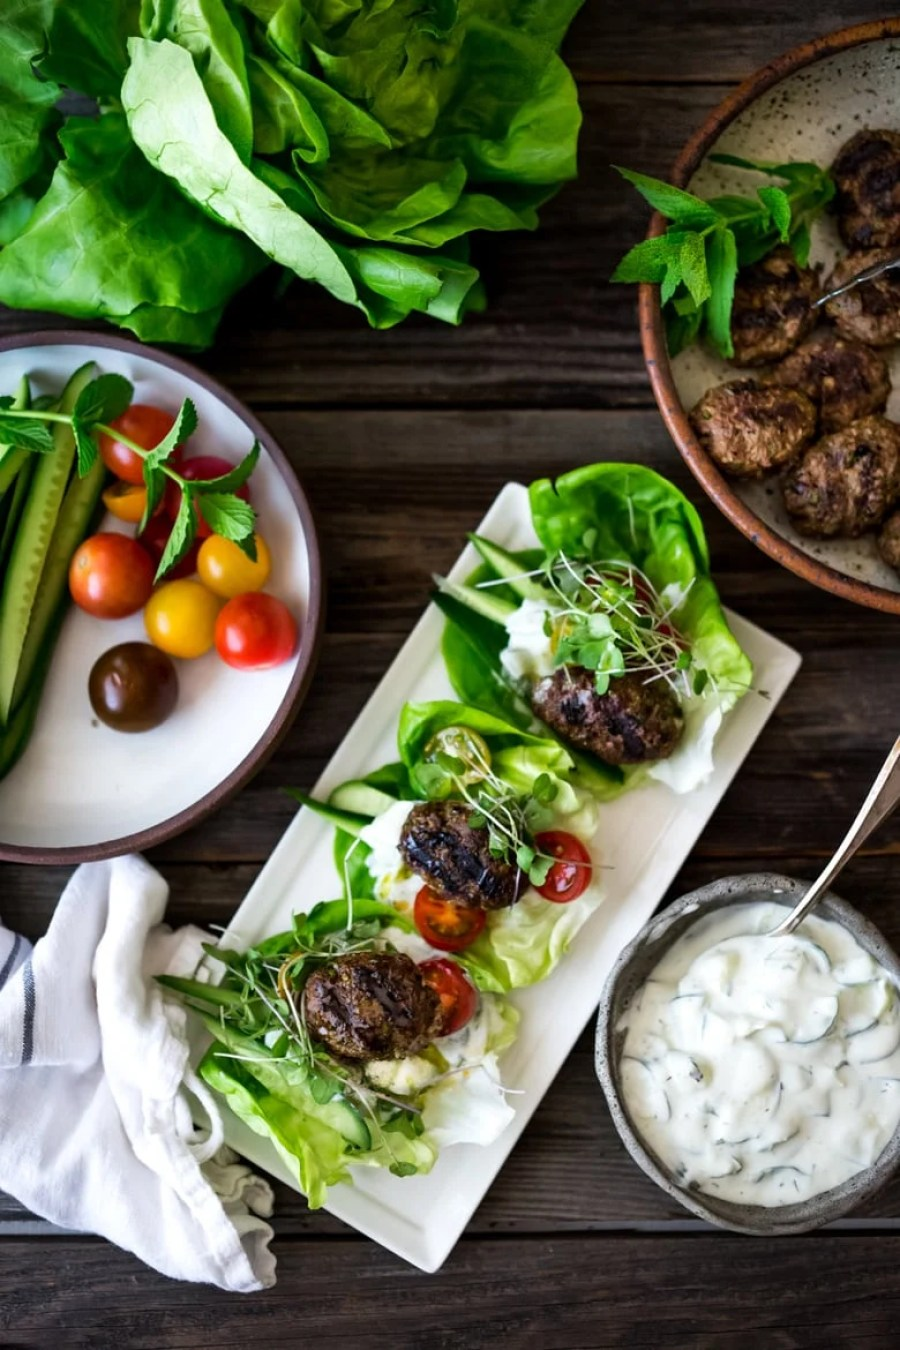 Grilled Lamb Kofta Wraps are light and delicious, bursting with Middle Eastern Flavor! Served with Tzatziki, these are low carb and high in protein. | www.feastingathome.com